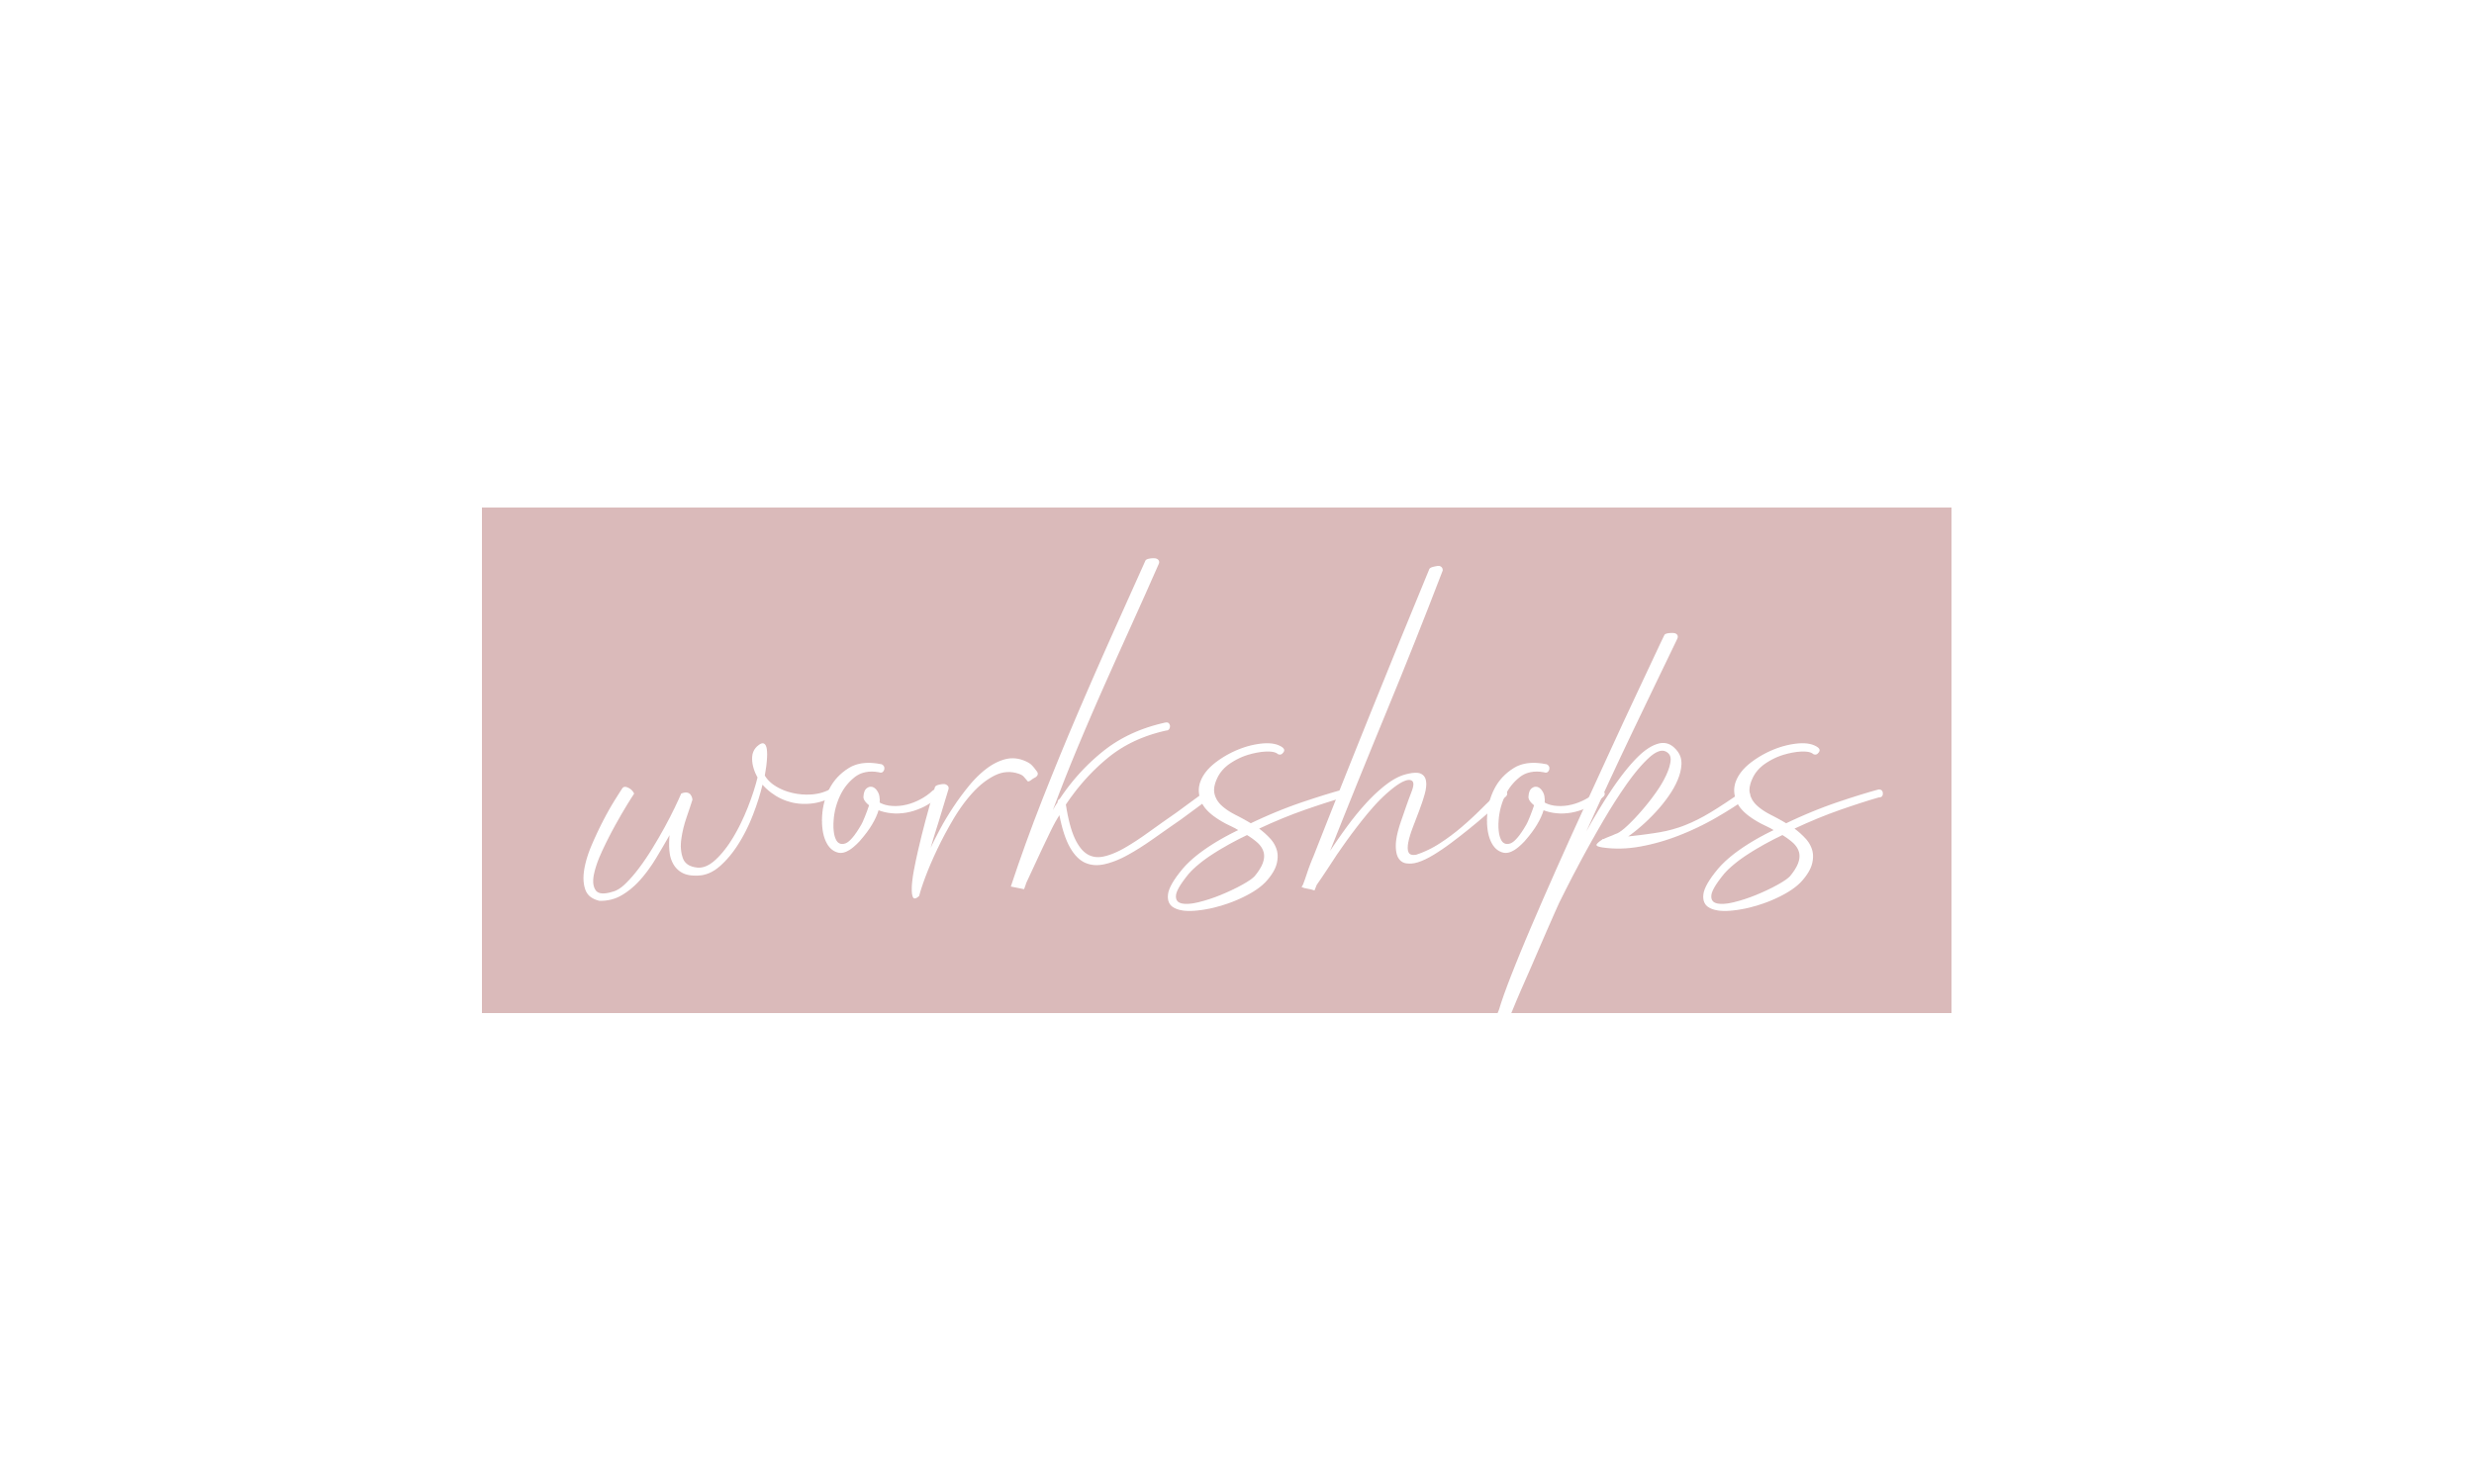 workshops_header_text.png